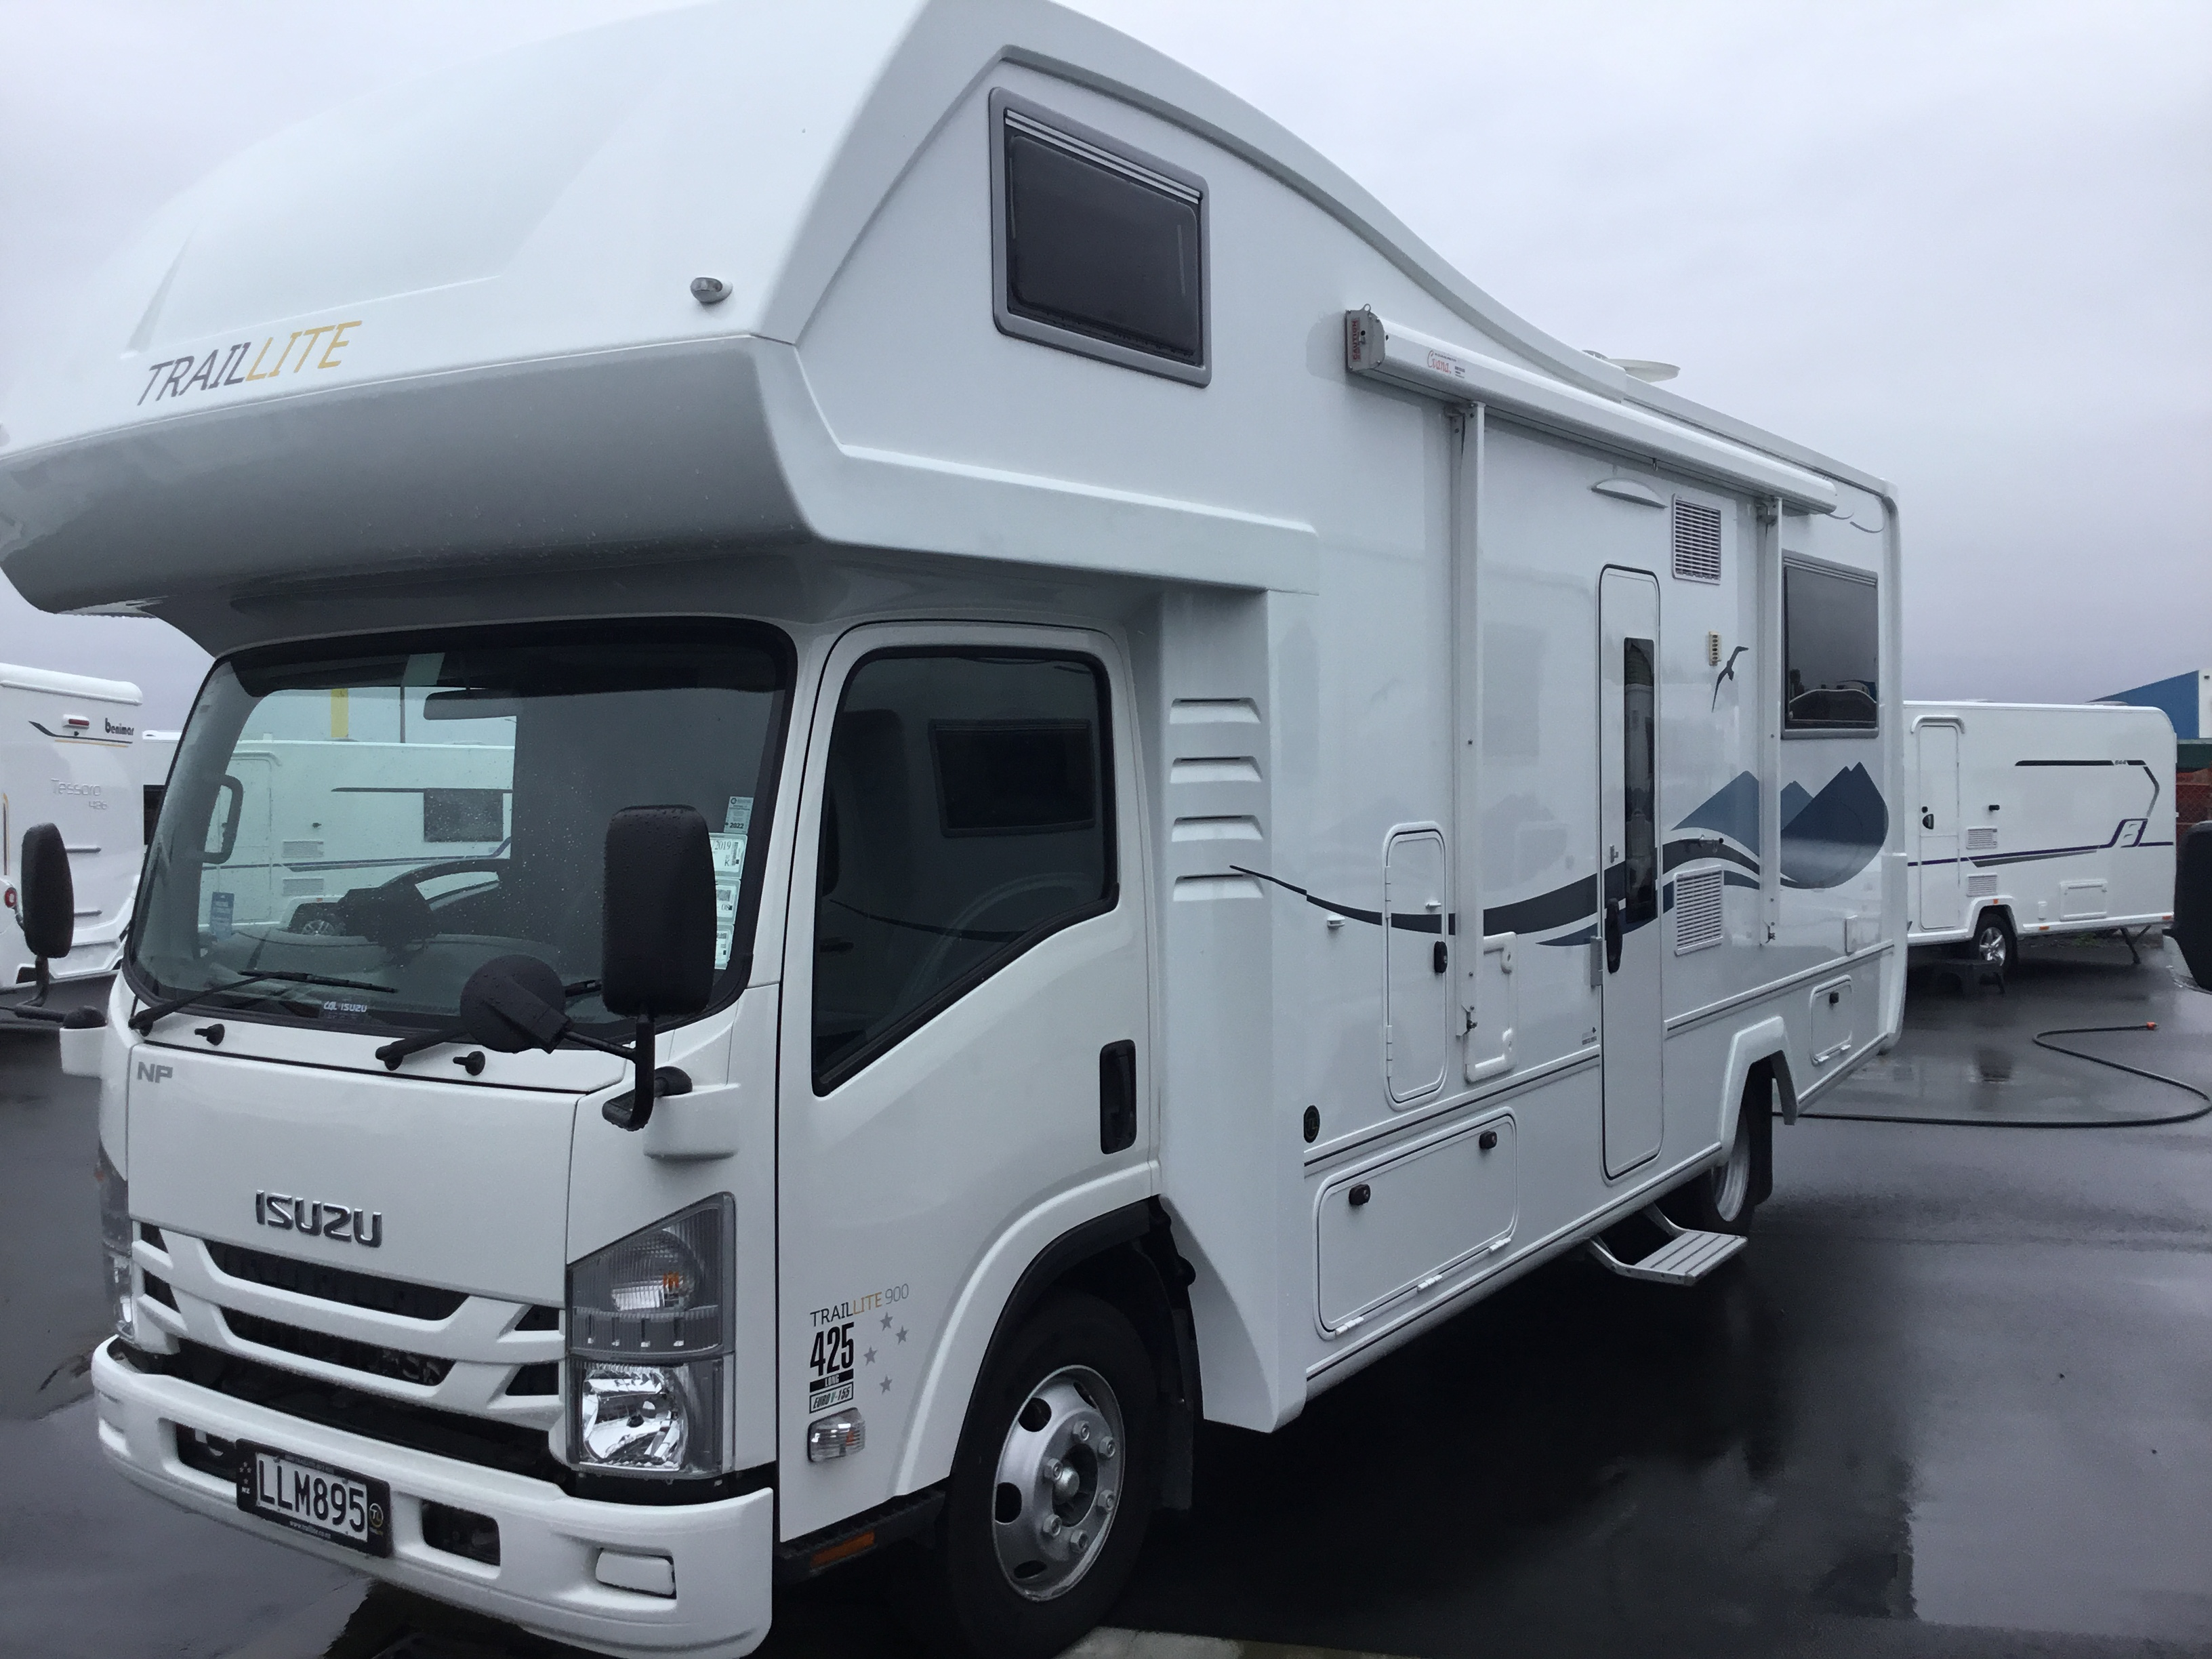 Maintaining your motorhome and caravan- what are the yearly maintenance requirements